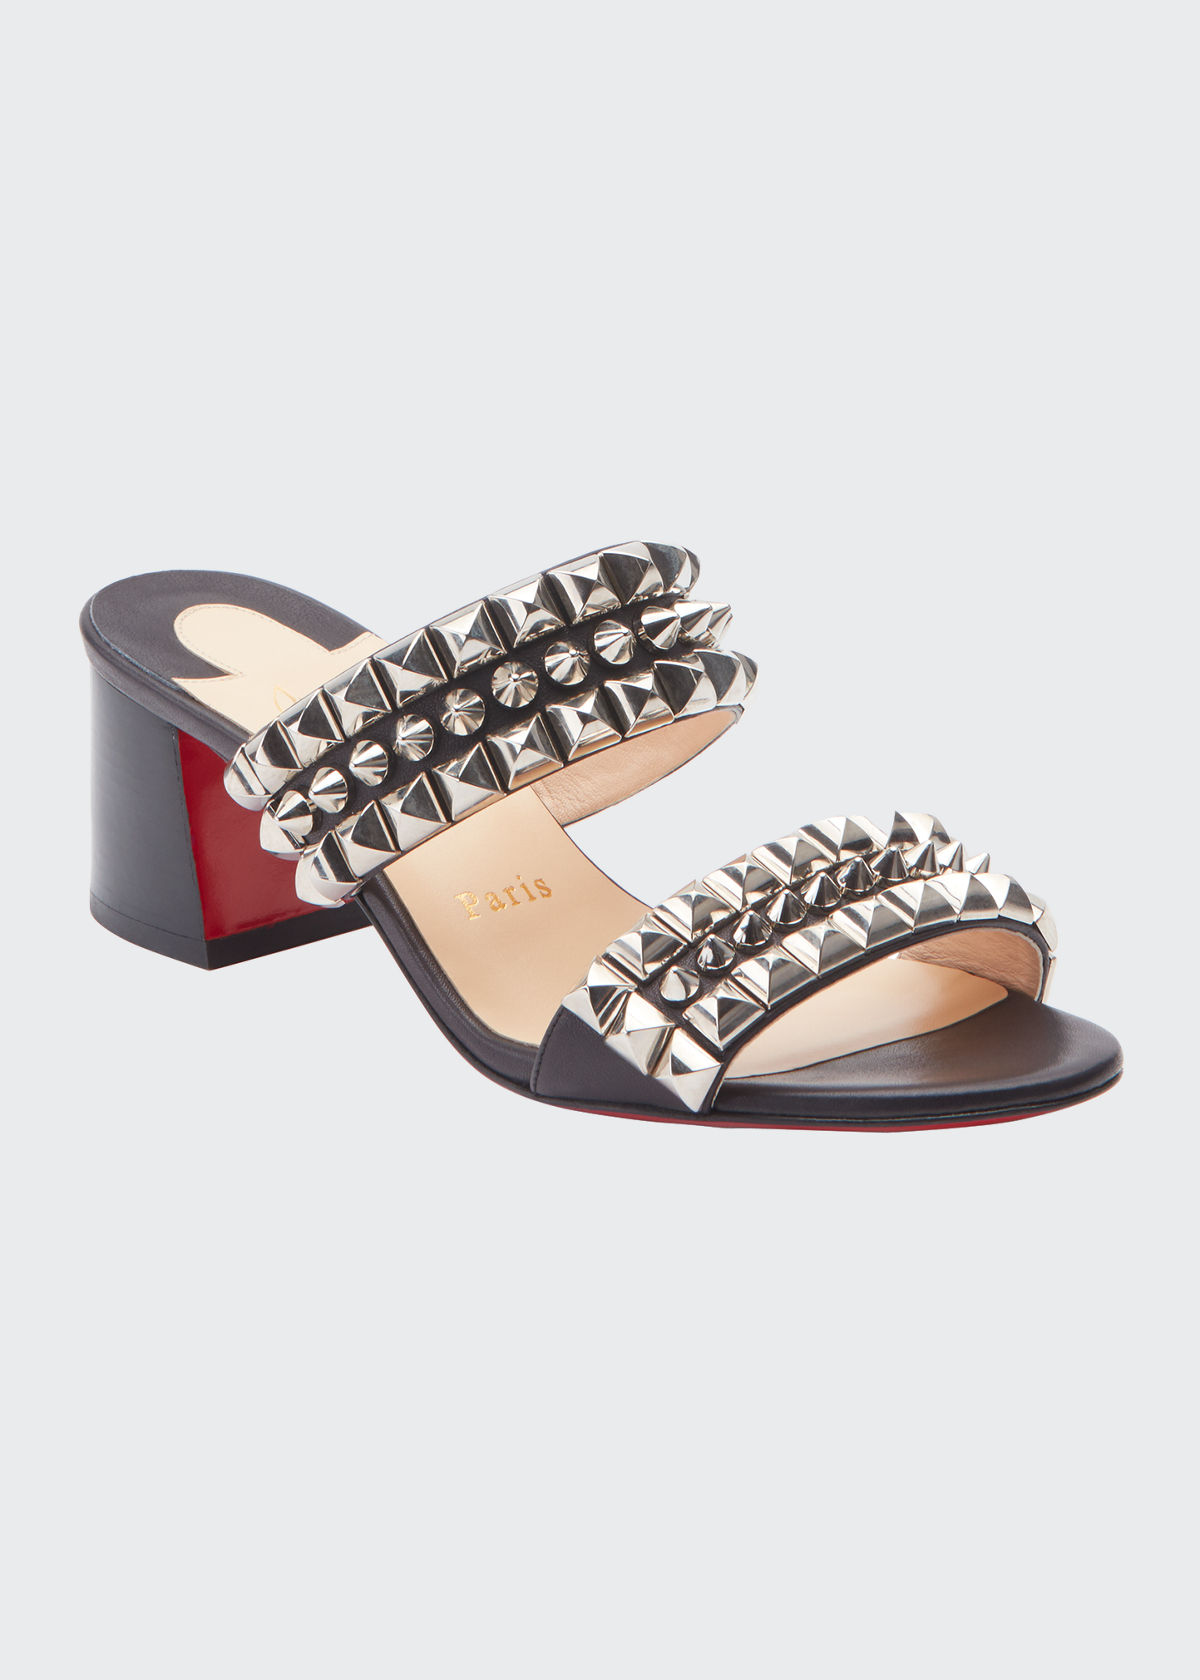 Christian Louboutin Leathers TINA GOES MAD 55 LEATHER RED SOLE SANDALS